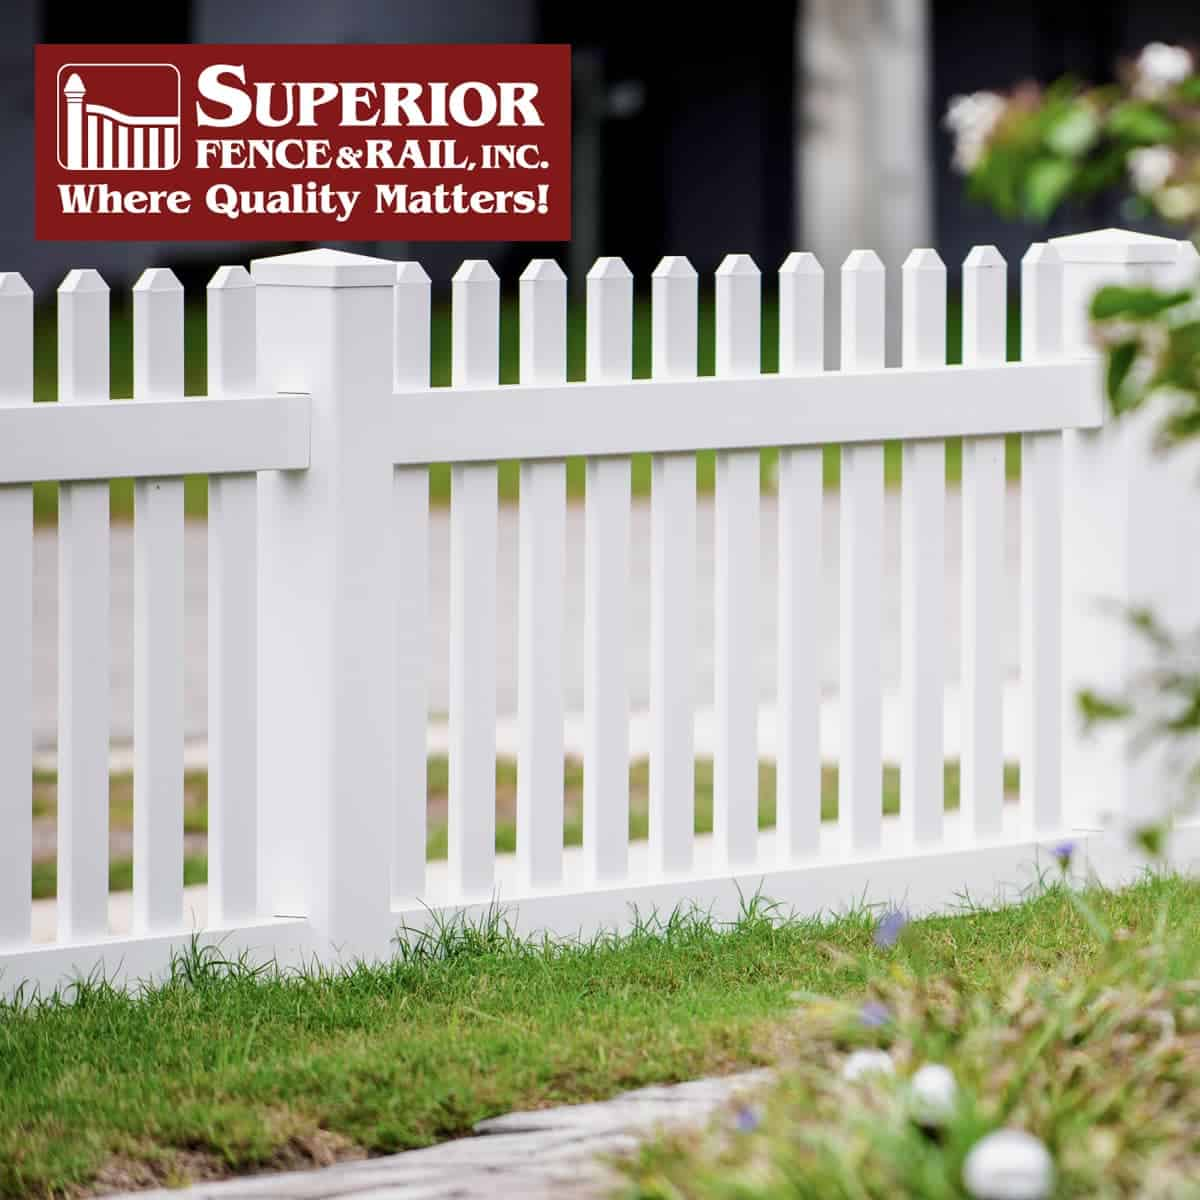 https://www.superiorfenceandrail.com/wp-content/uploads/2020/06/Odessa-Fence-Company-Contractor.jpg